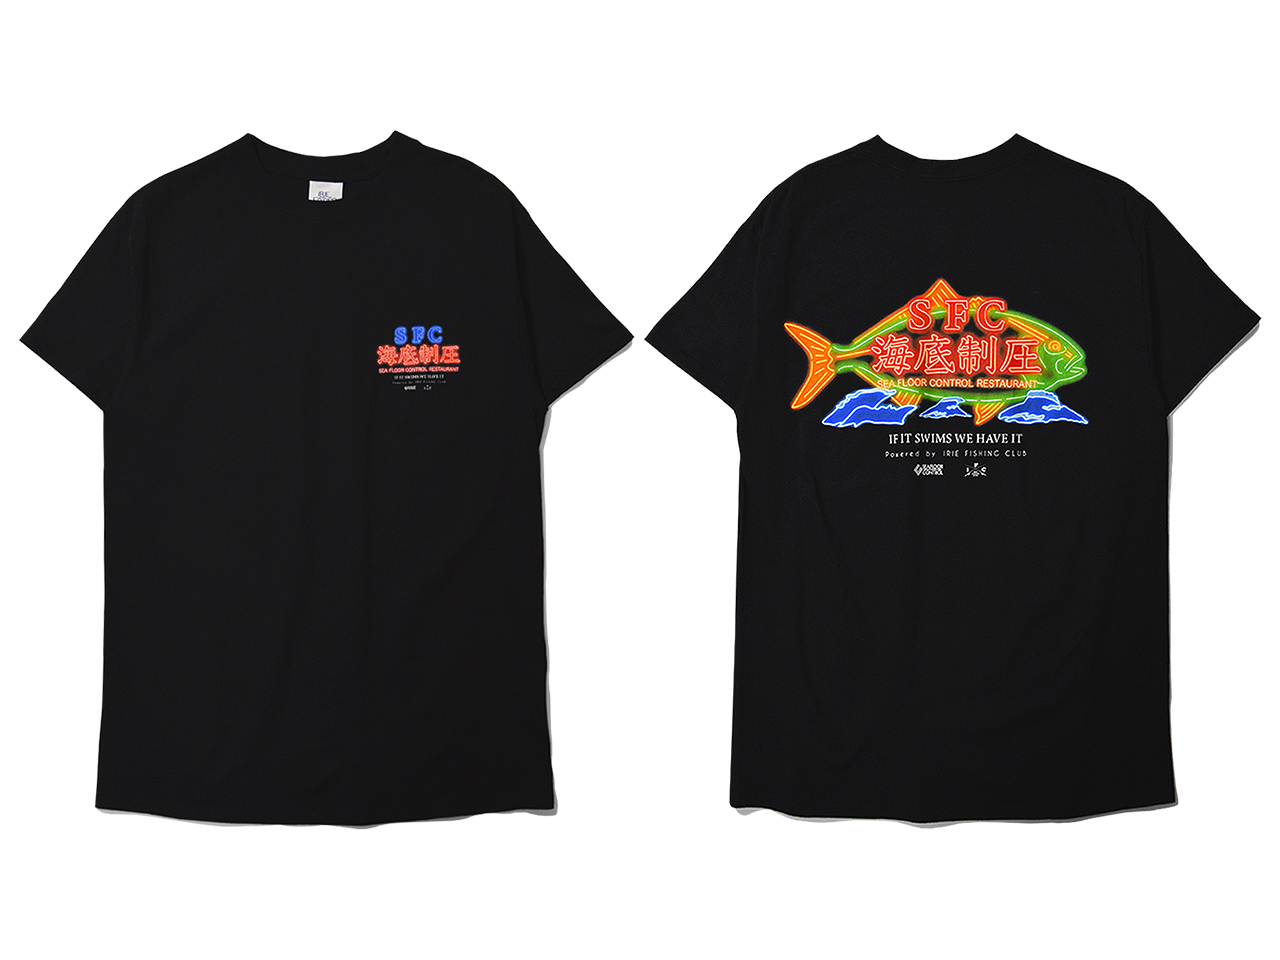 SFC RESTAURANT TEE - IRIE FISHING CLUB